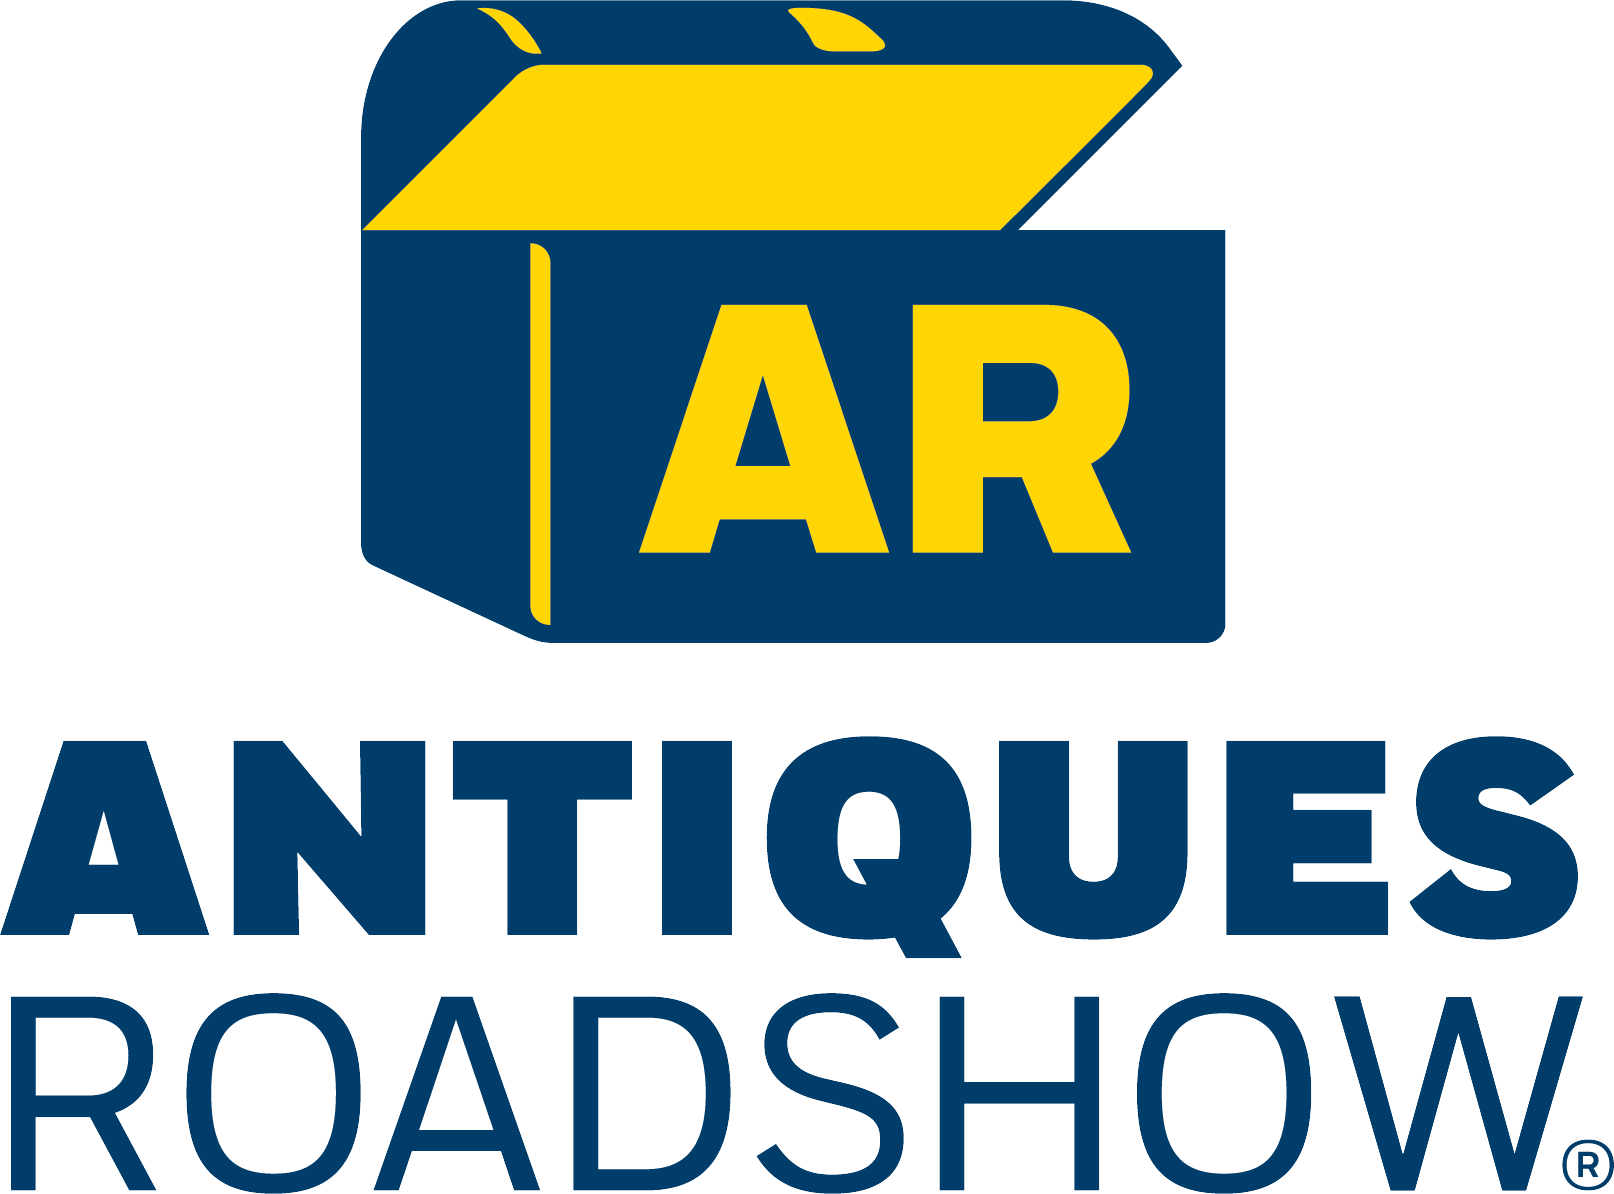 Antiques Roadshow Series